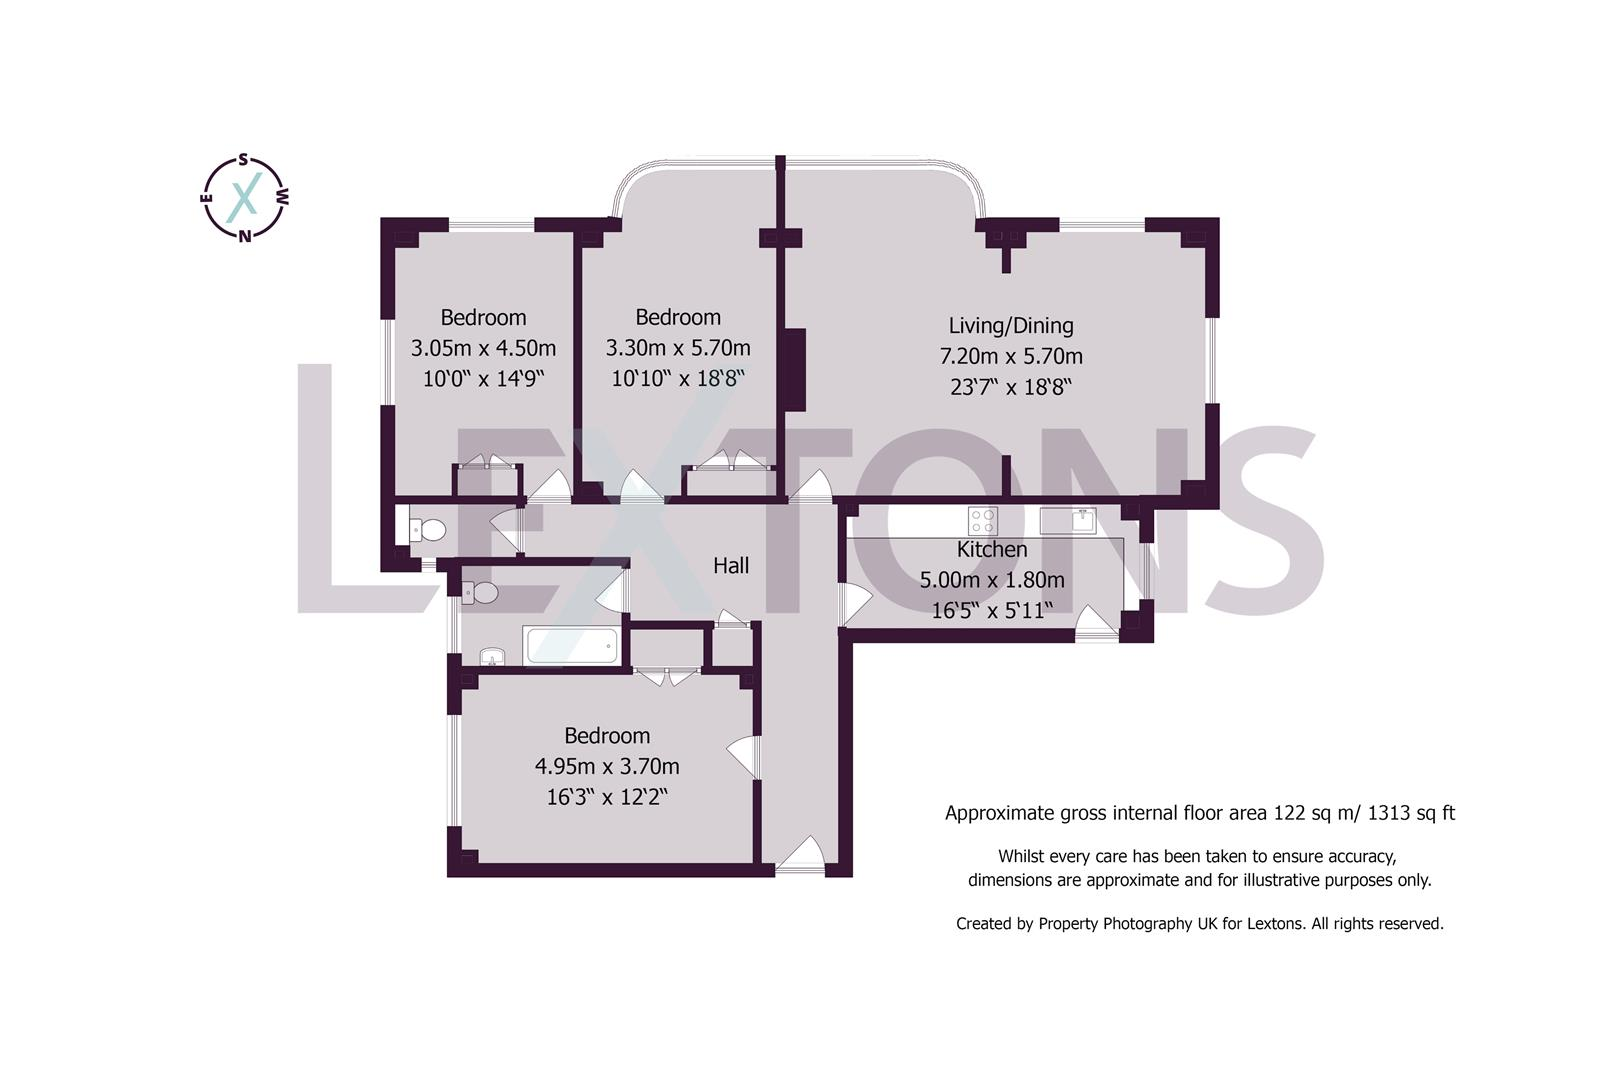 Floorplans For Furze Hill, Hove